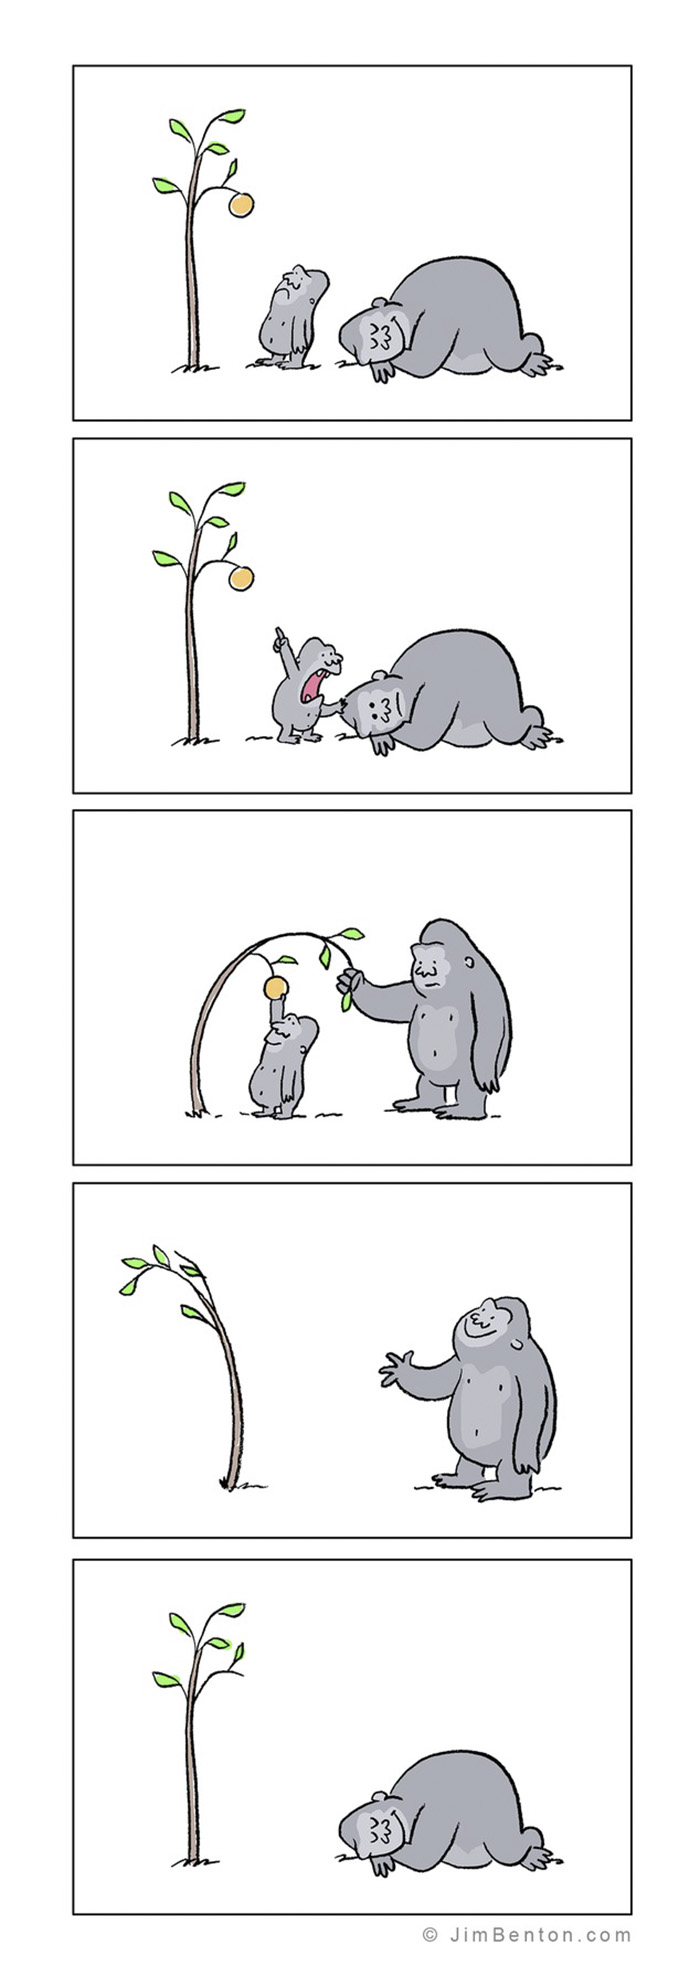 A Few Animal Cartoons By Jim Benton